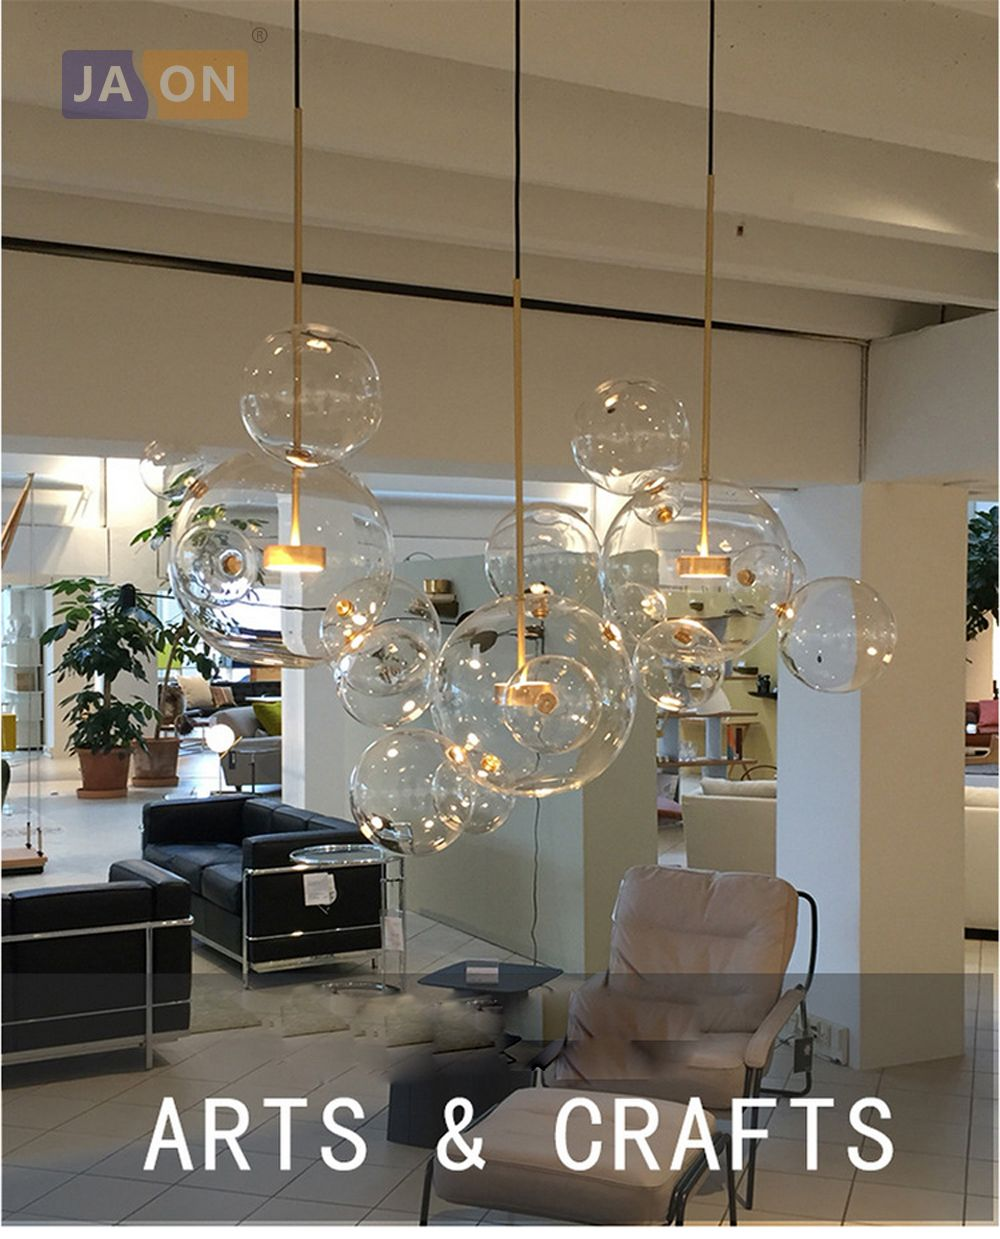 Led Postmodern Nordico Hierro Burbujas De Cristal Disenador Led Lampara Led Luz Glass Ball Pendant Lighting Ball Pendant Lighting Pendant Lighting Dining Room